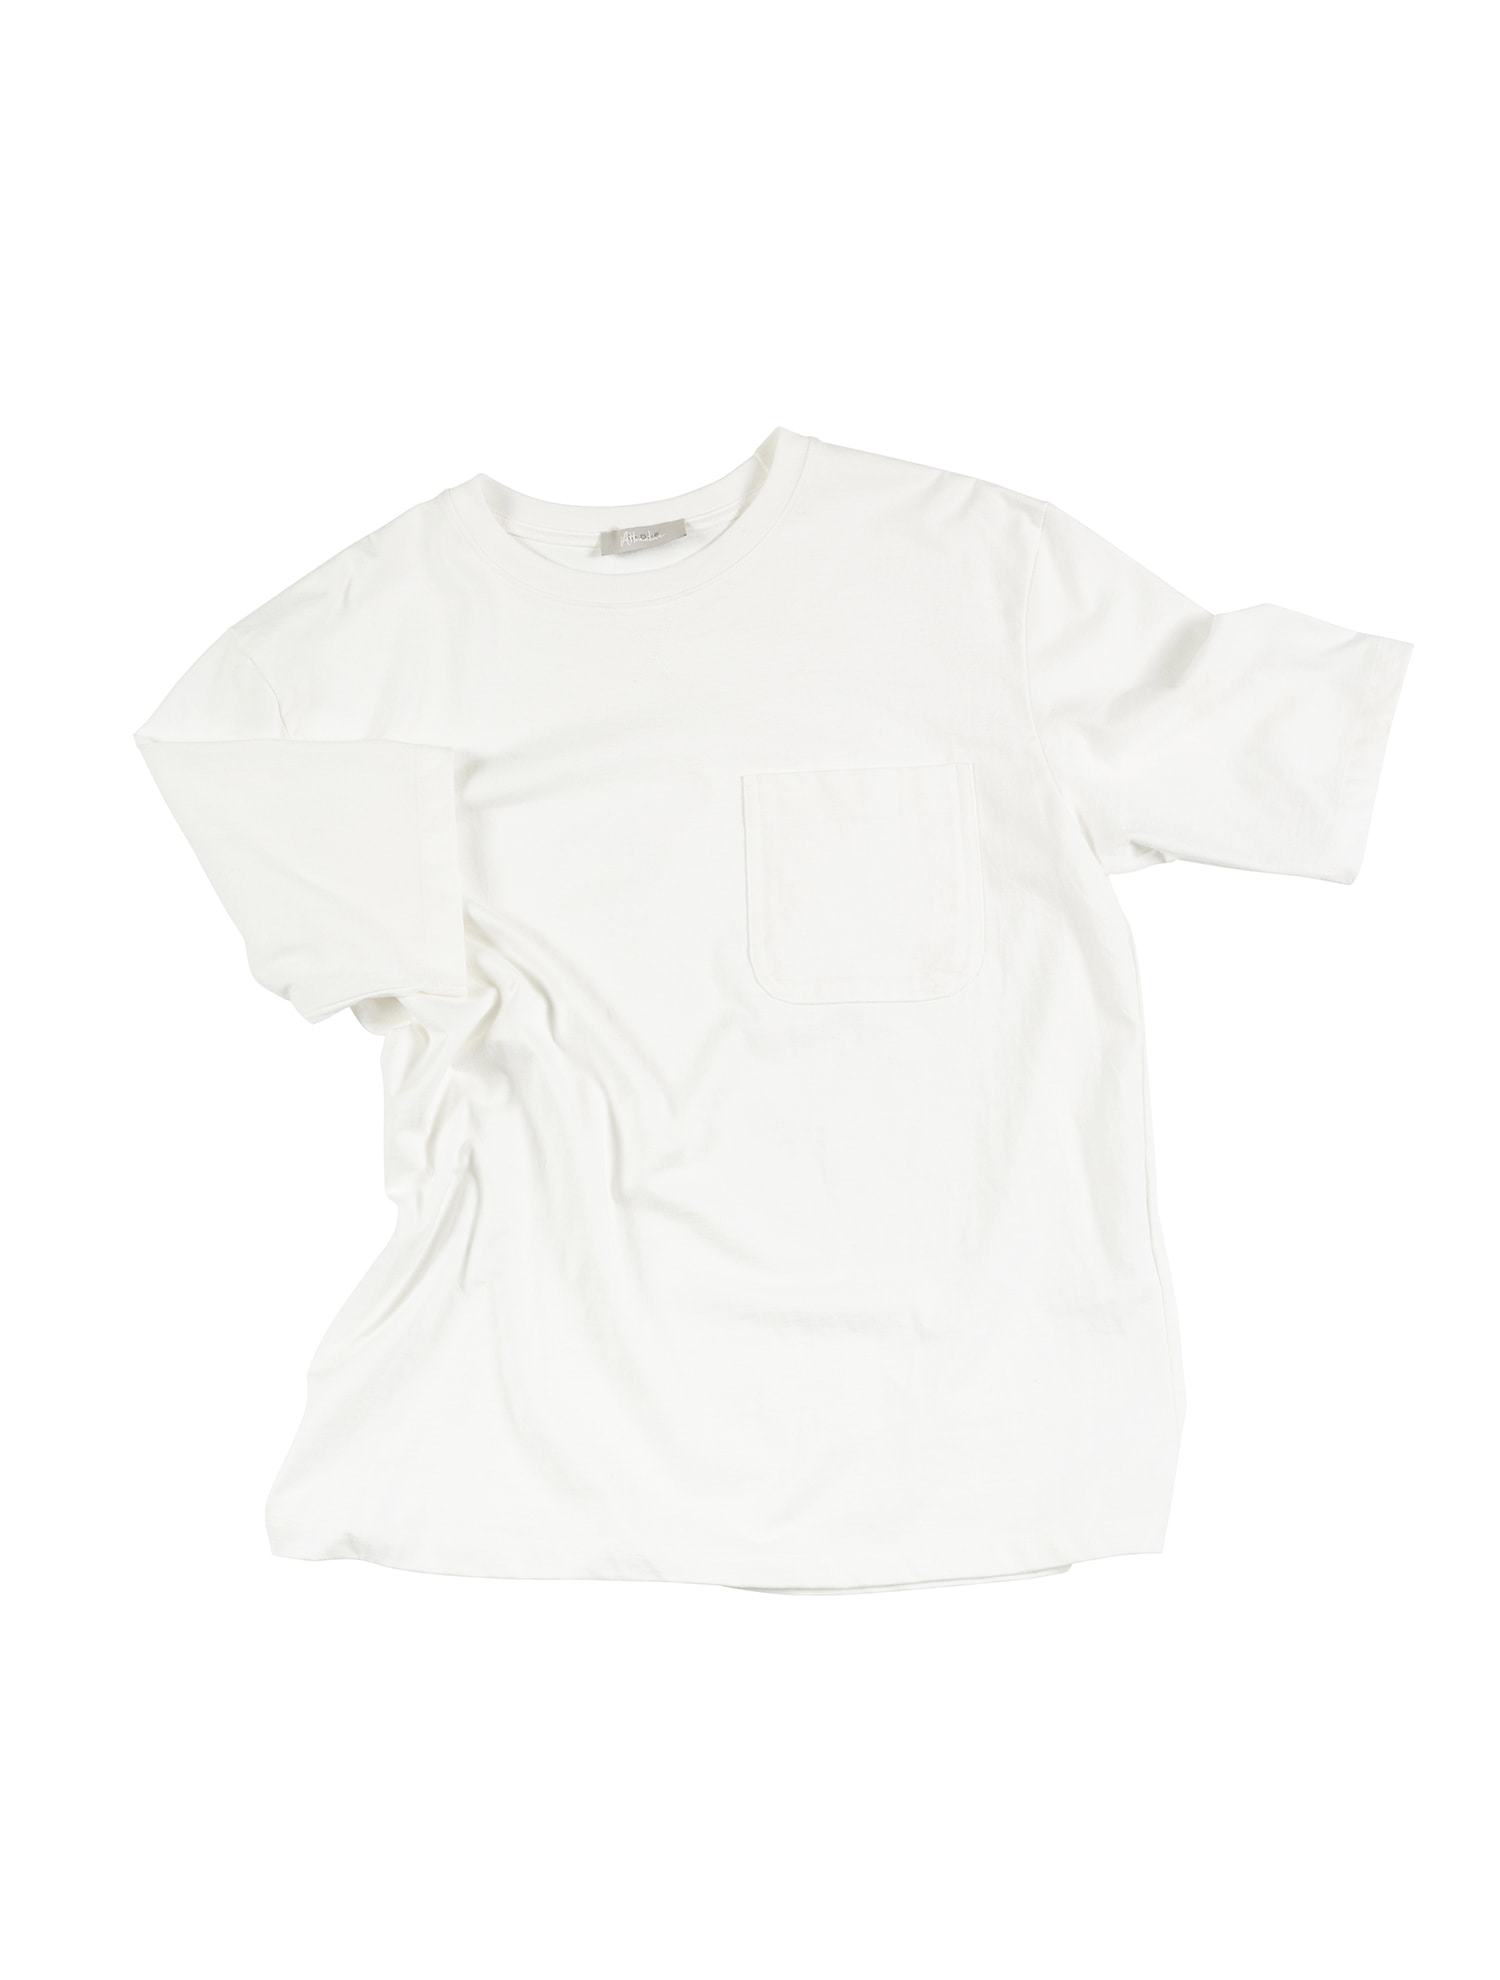 [올드비] ATTRACTIVE Crew neck Pocket Tee - Ivory